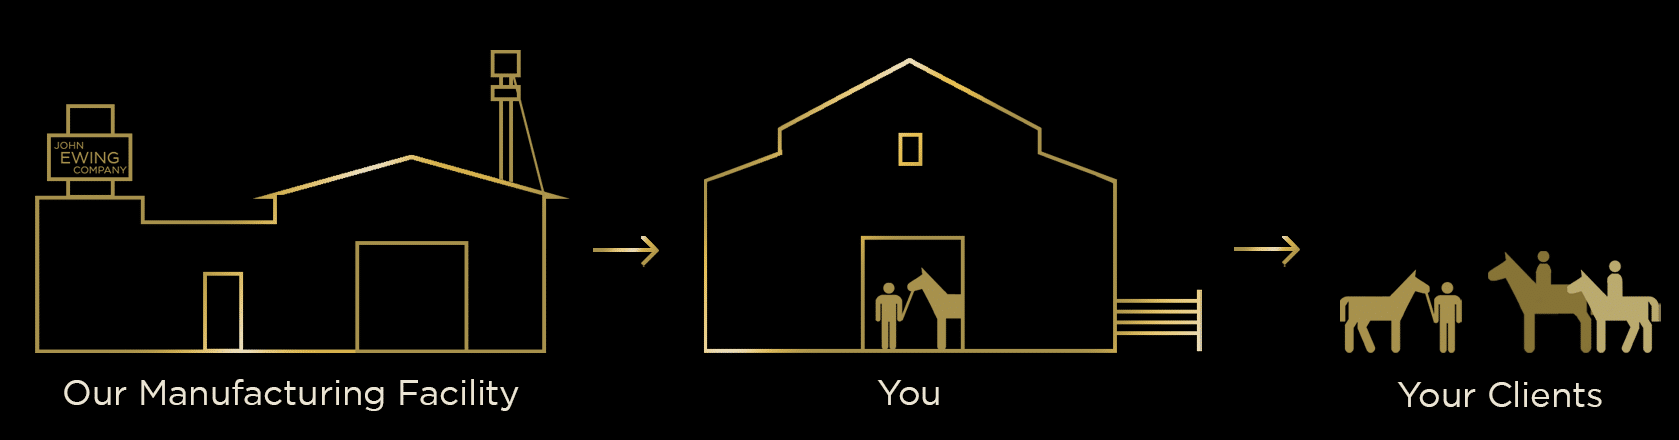 process of Horse Logic's process and distribution